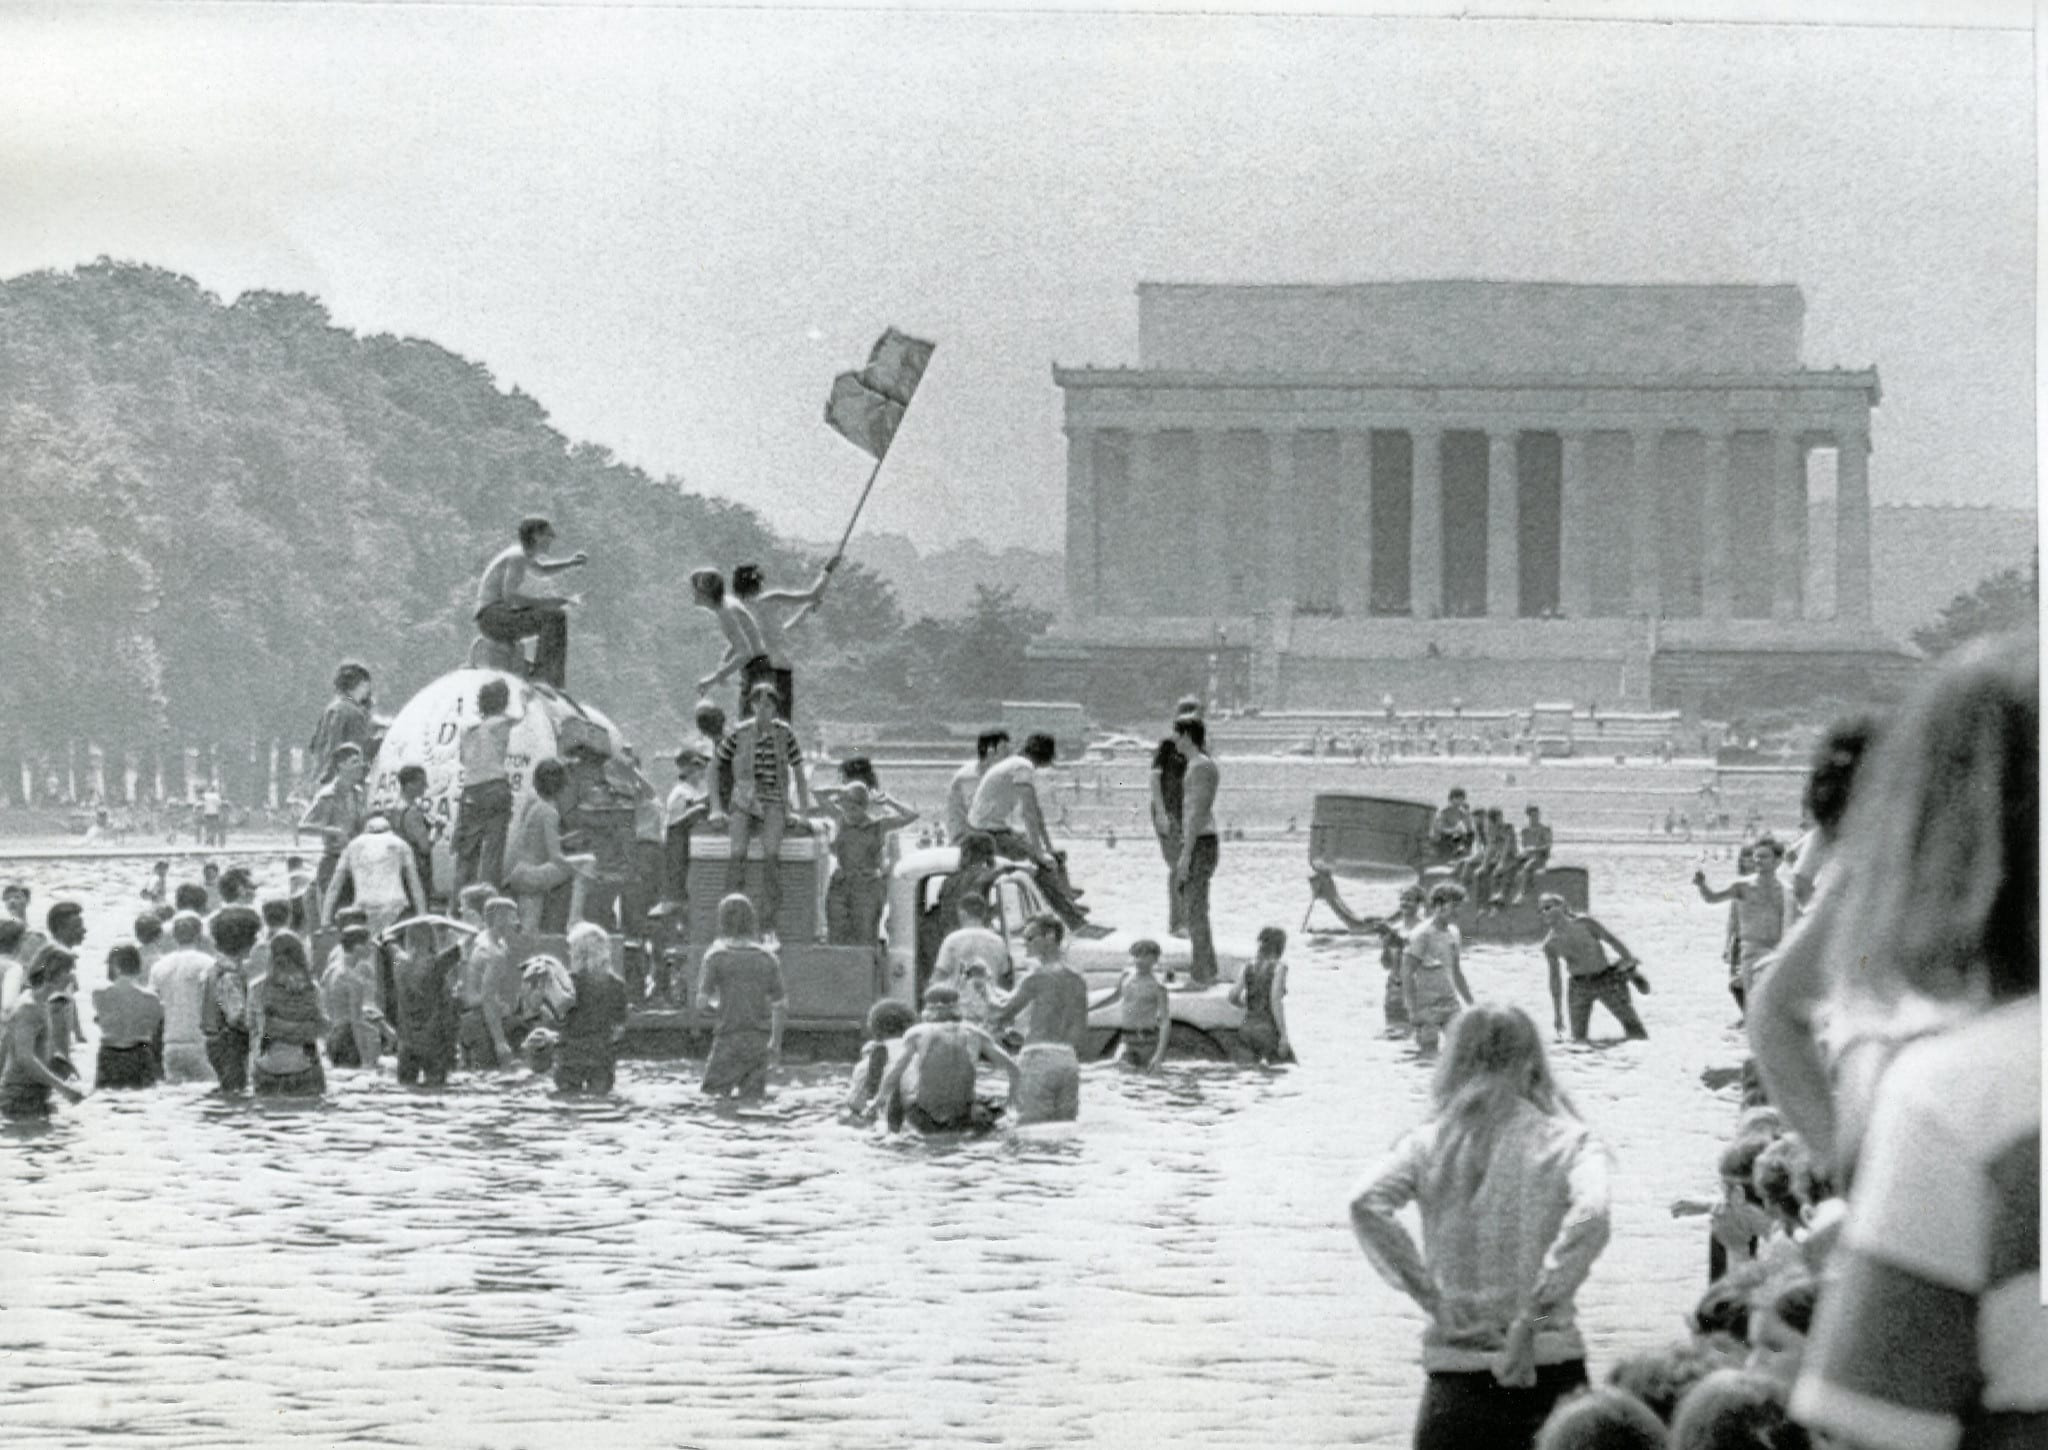 Protesters at the July 4, 1970 Honor America Day celebration wave a Viet Cong and a marijuana leaf flag atop a lighting truck they had pushed into the reflecting pool near the Lincoln Memorial in Washington, D.C.